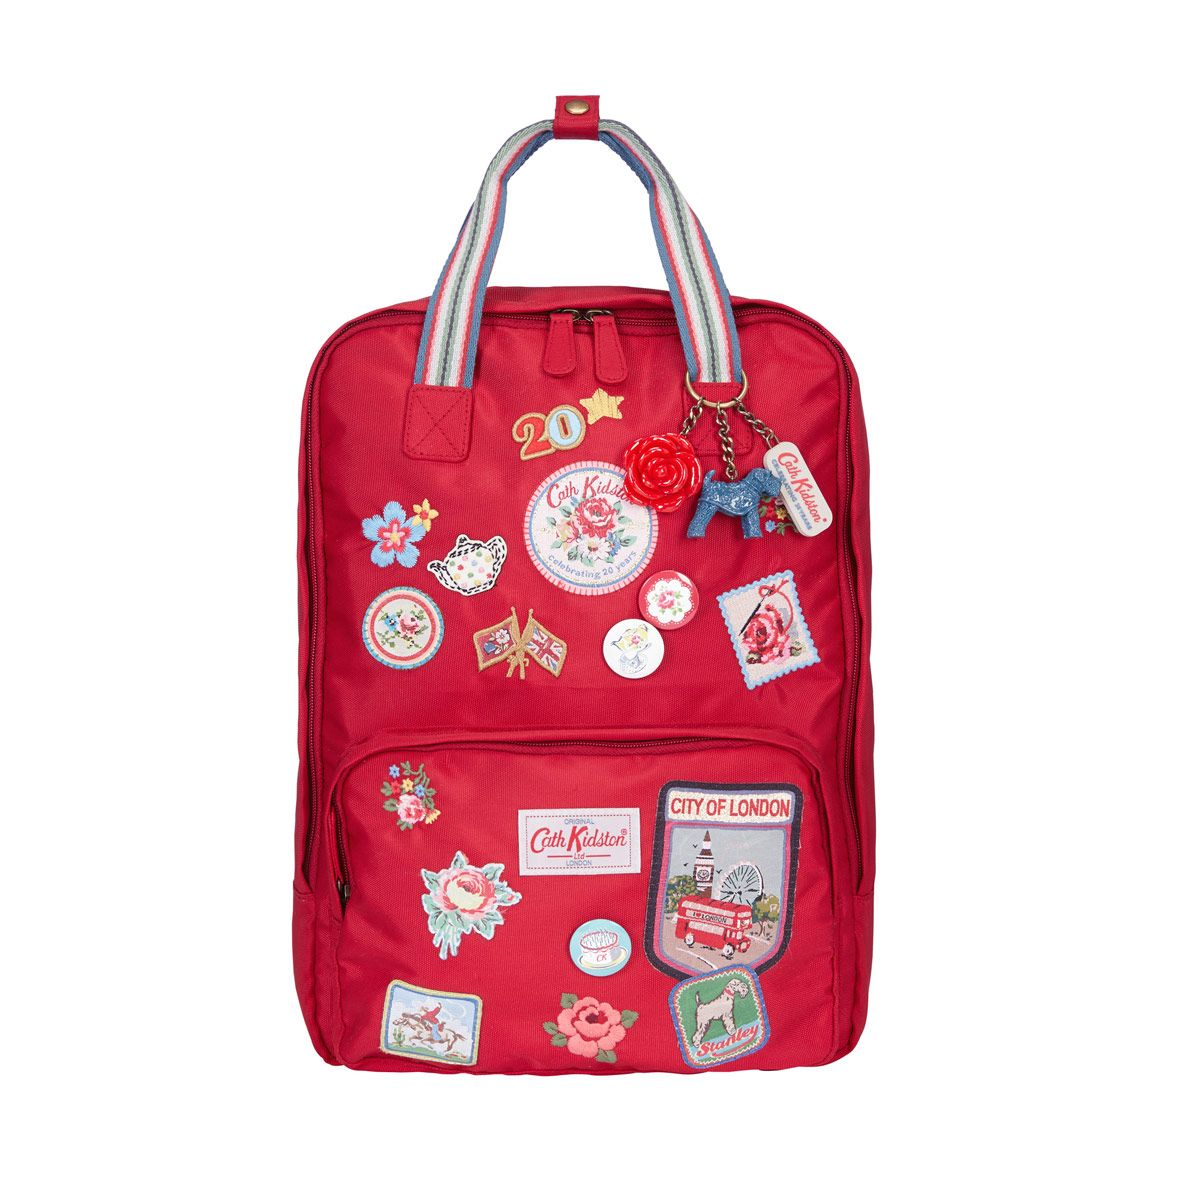 556f3839576 20th Birthday Collection   20th Birthday Backpack   CathKidston ...